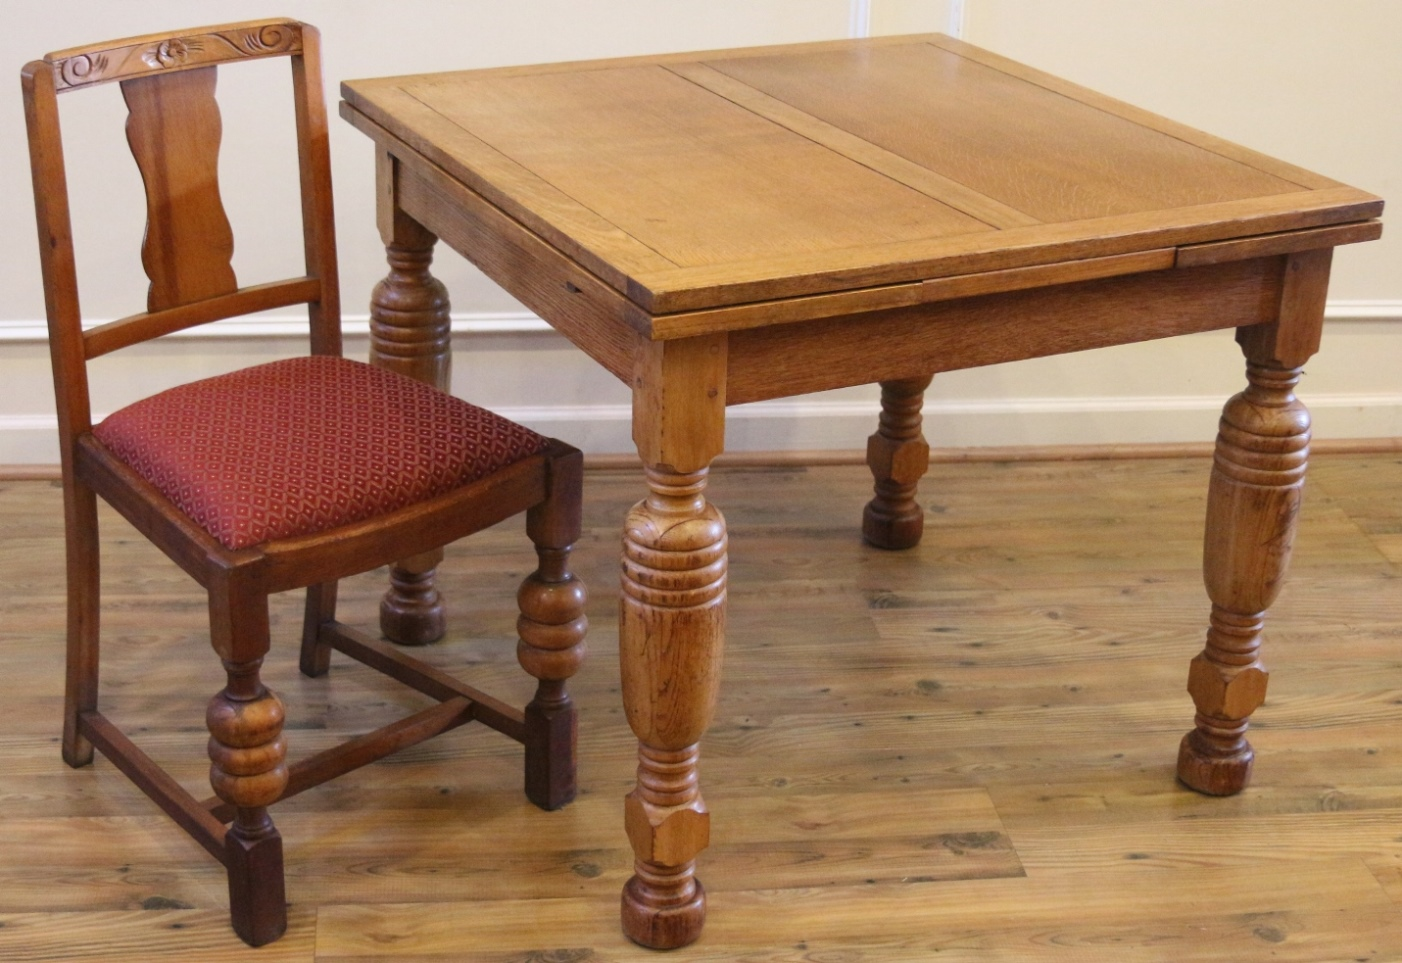 ANTIQUE DINING TABLES UK  Elisabeth James Antiques